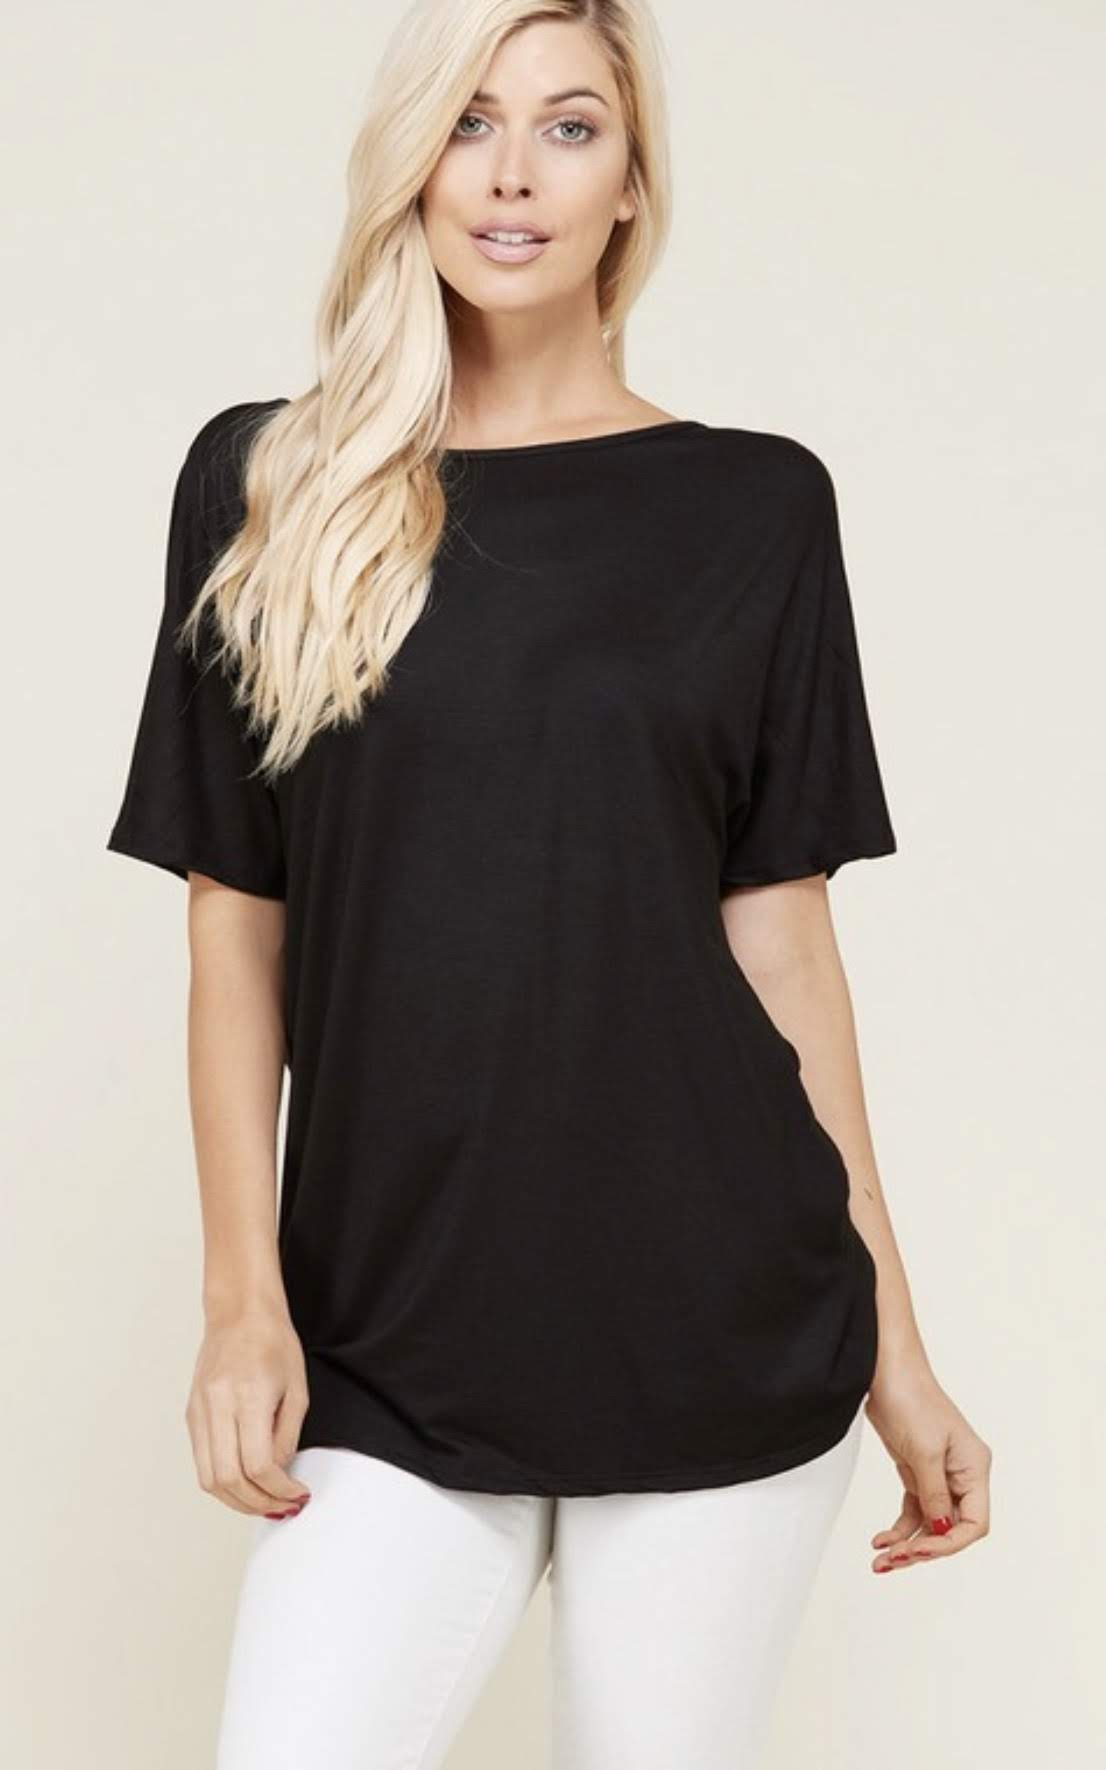 Black Short Sleeved Jersey Top with Knot Back